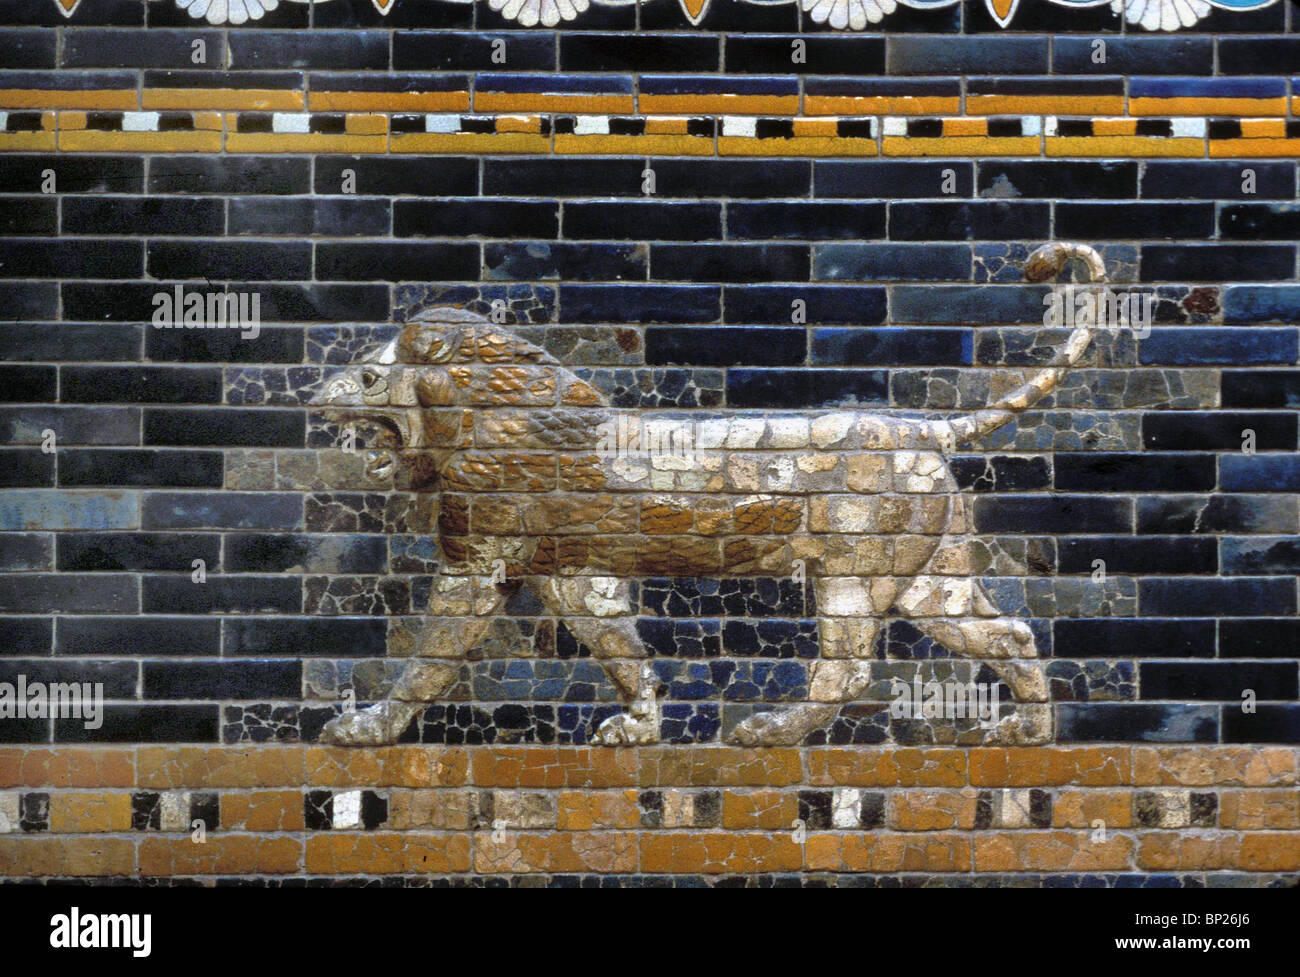 GLAZED BRICKWORK DEPICTING LIONS (DETAIL) FROM THE ISHTAR GATE ONE OF THE ENTRANCES TO THE CITY OF BABYLON. BUILT Stock Photo